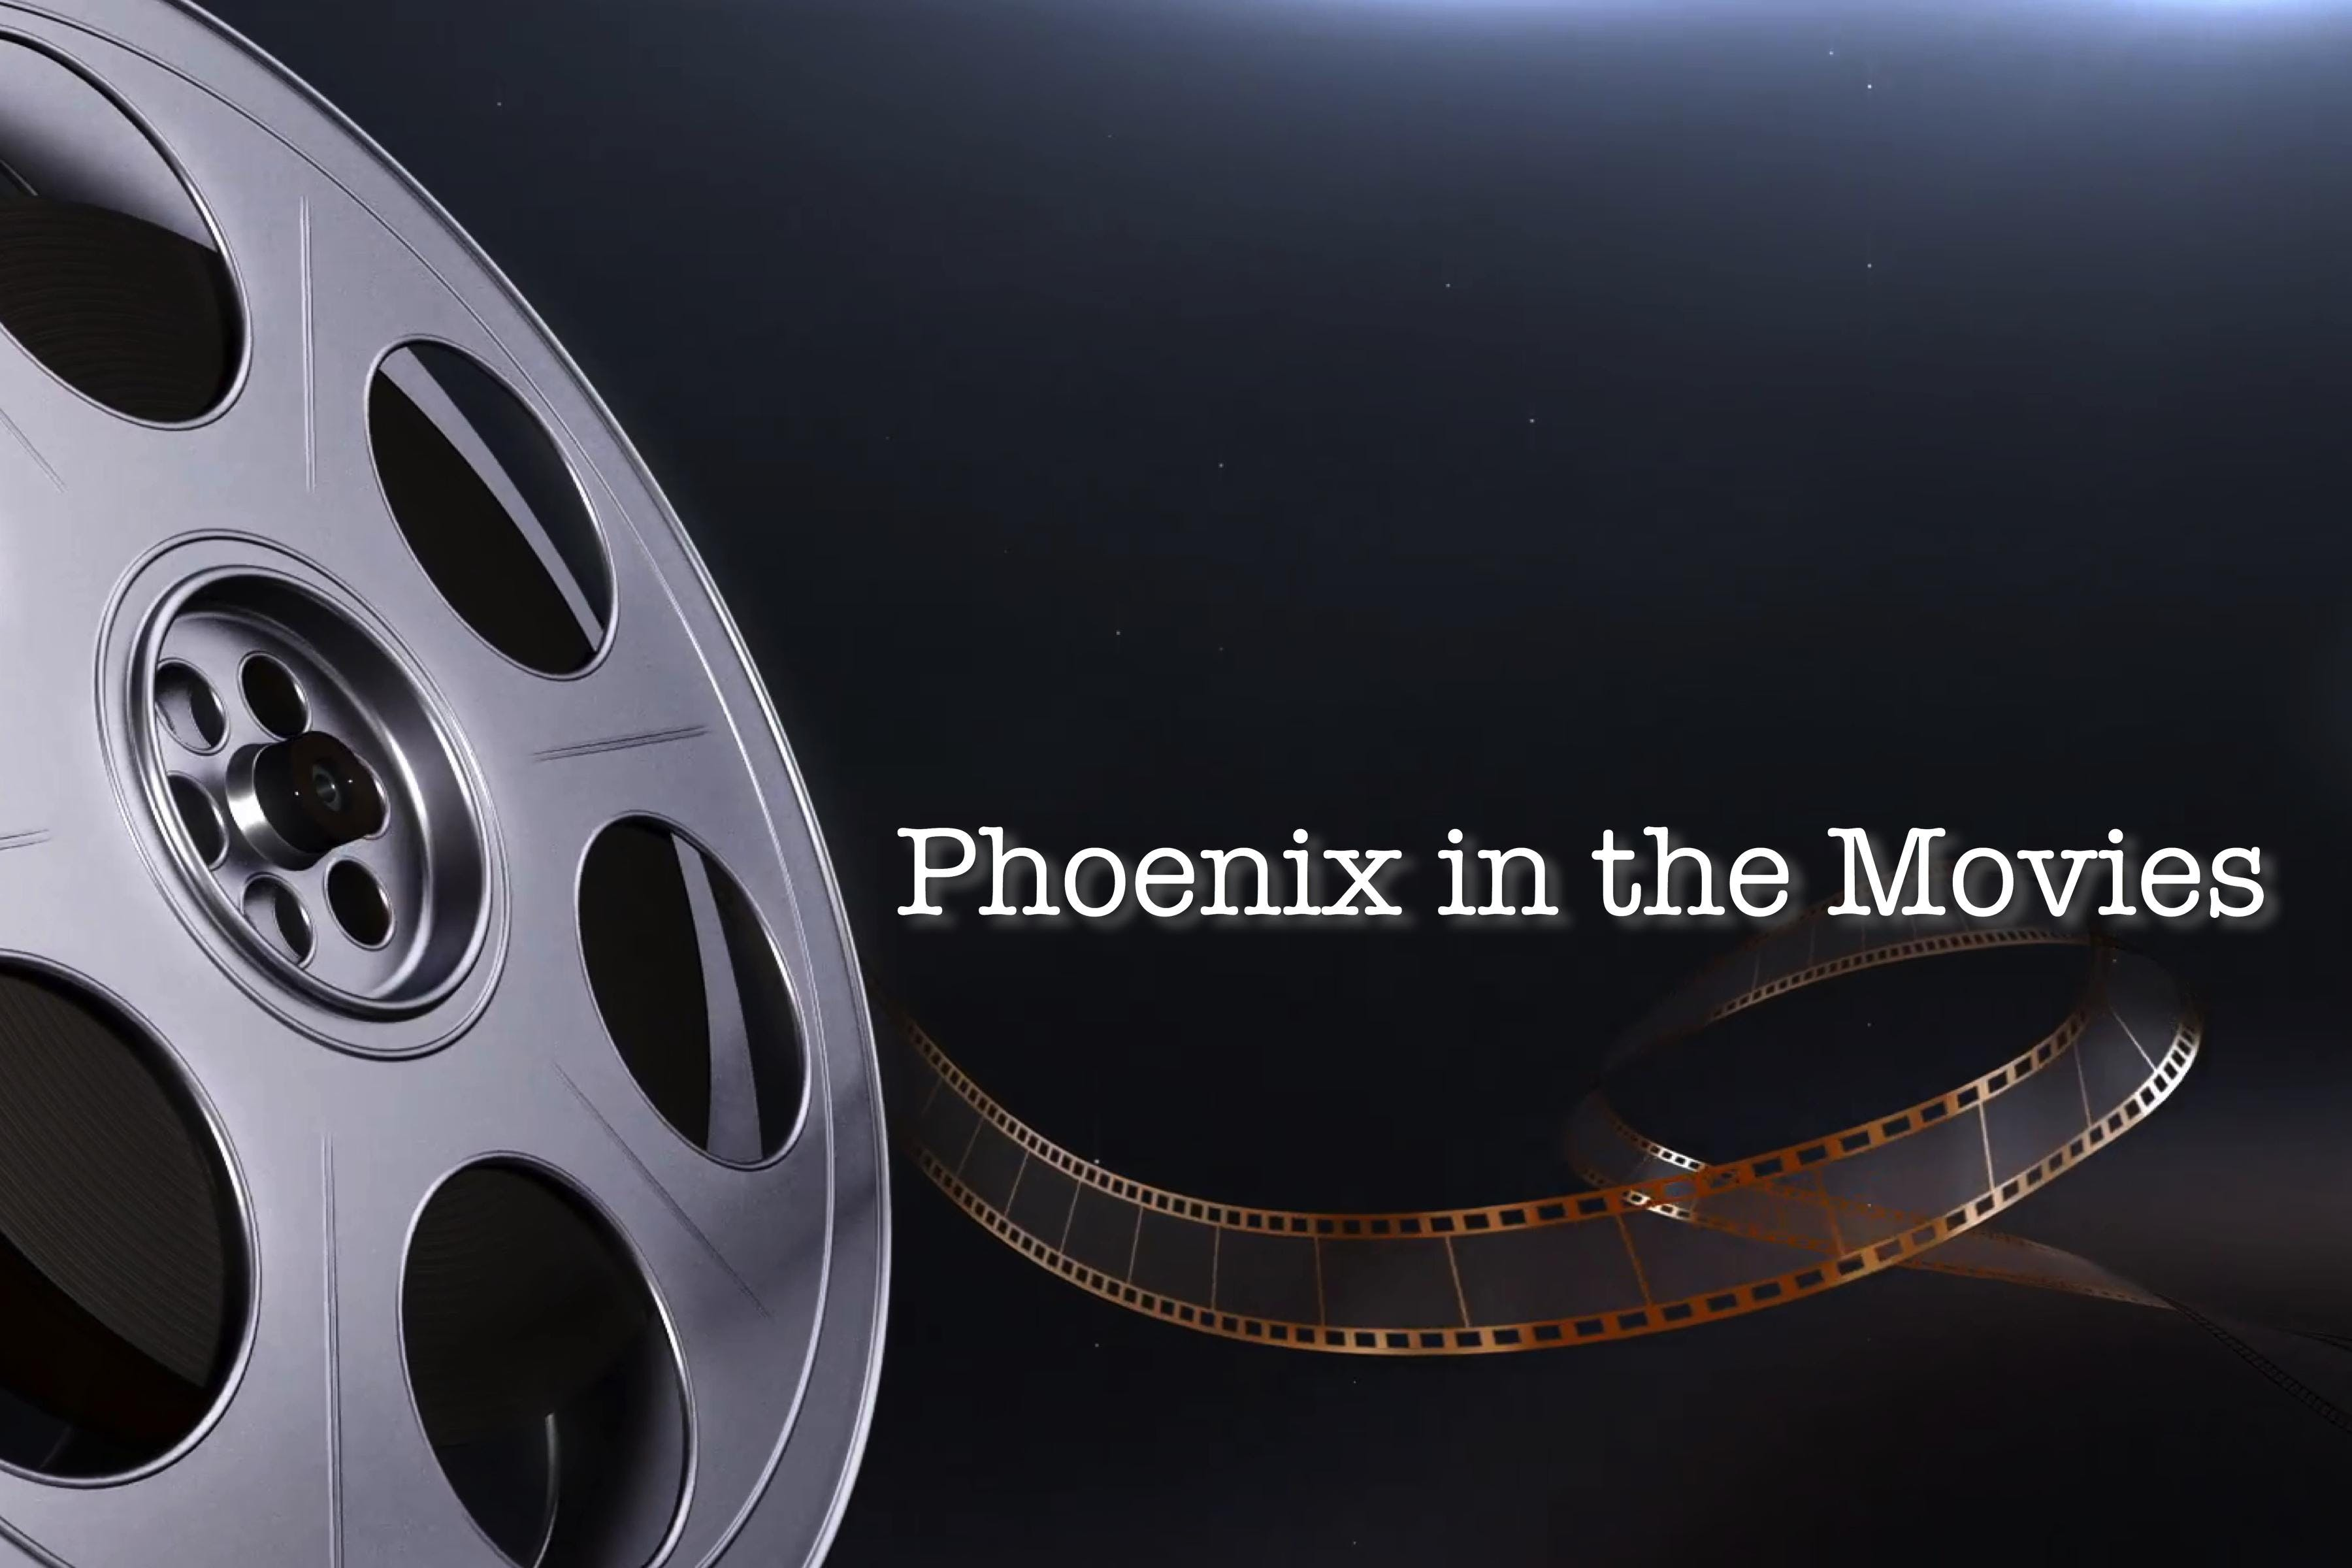 Phoenix in the Movies